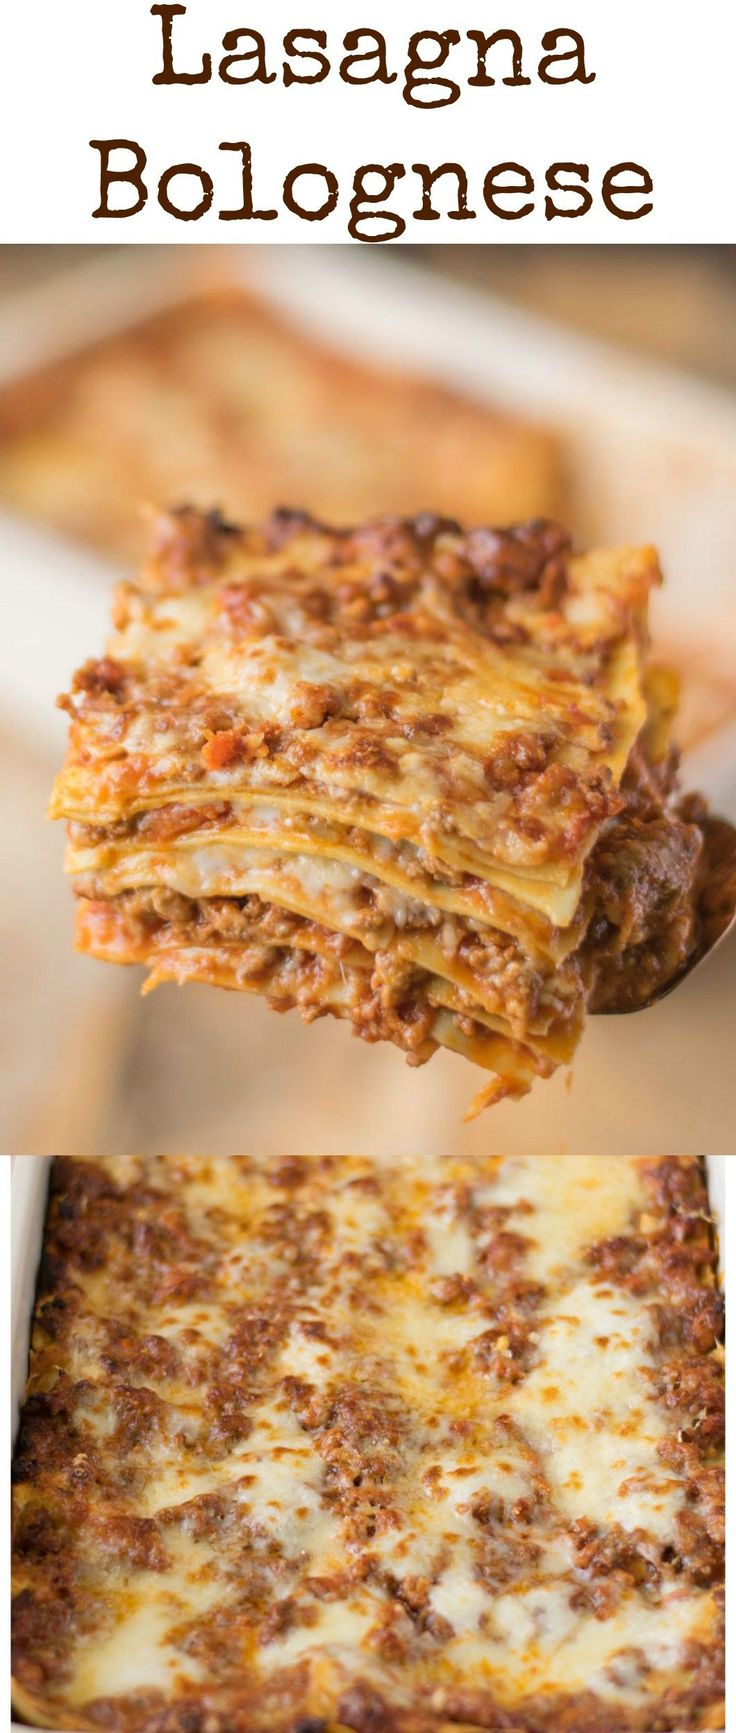 Lasagna (lasagne) Bolognese is a hearty Italian classic recipe with layers of fresh pasta, Bolognese sauce, bechamel sauce and Parmesan cheese. Perfect for feeding a crowd or freezing. #pastafoodrecipes